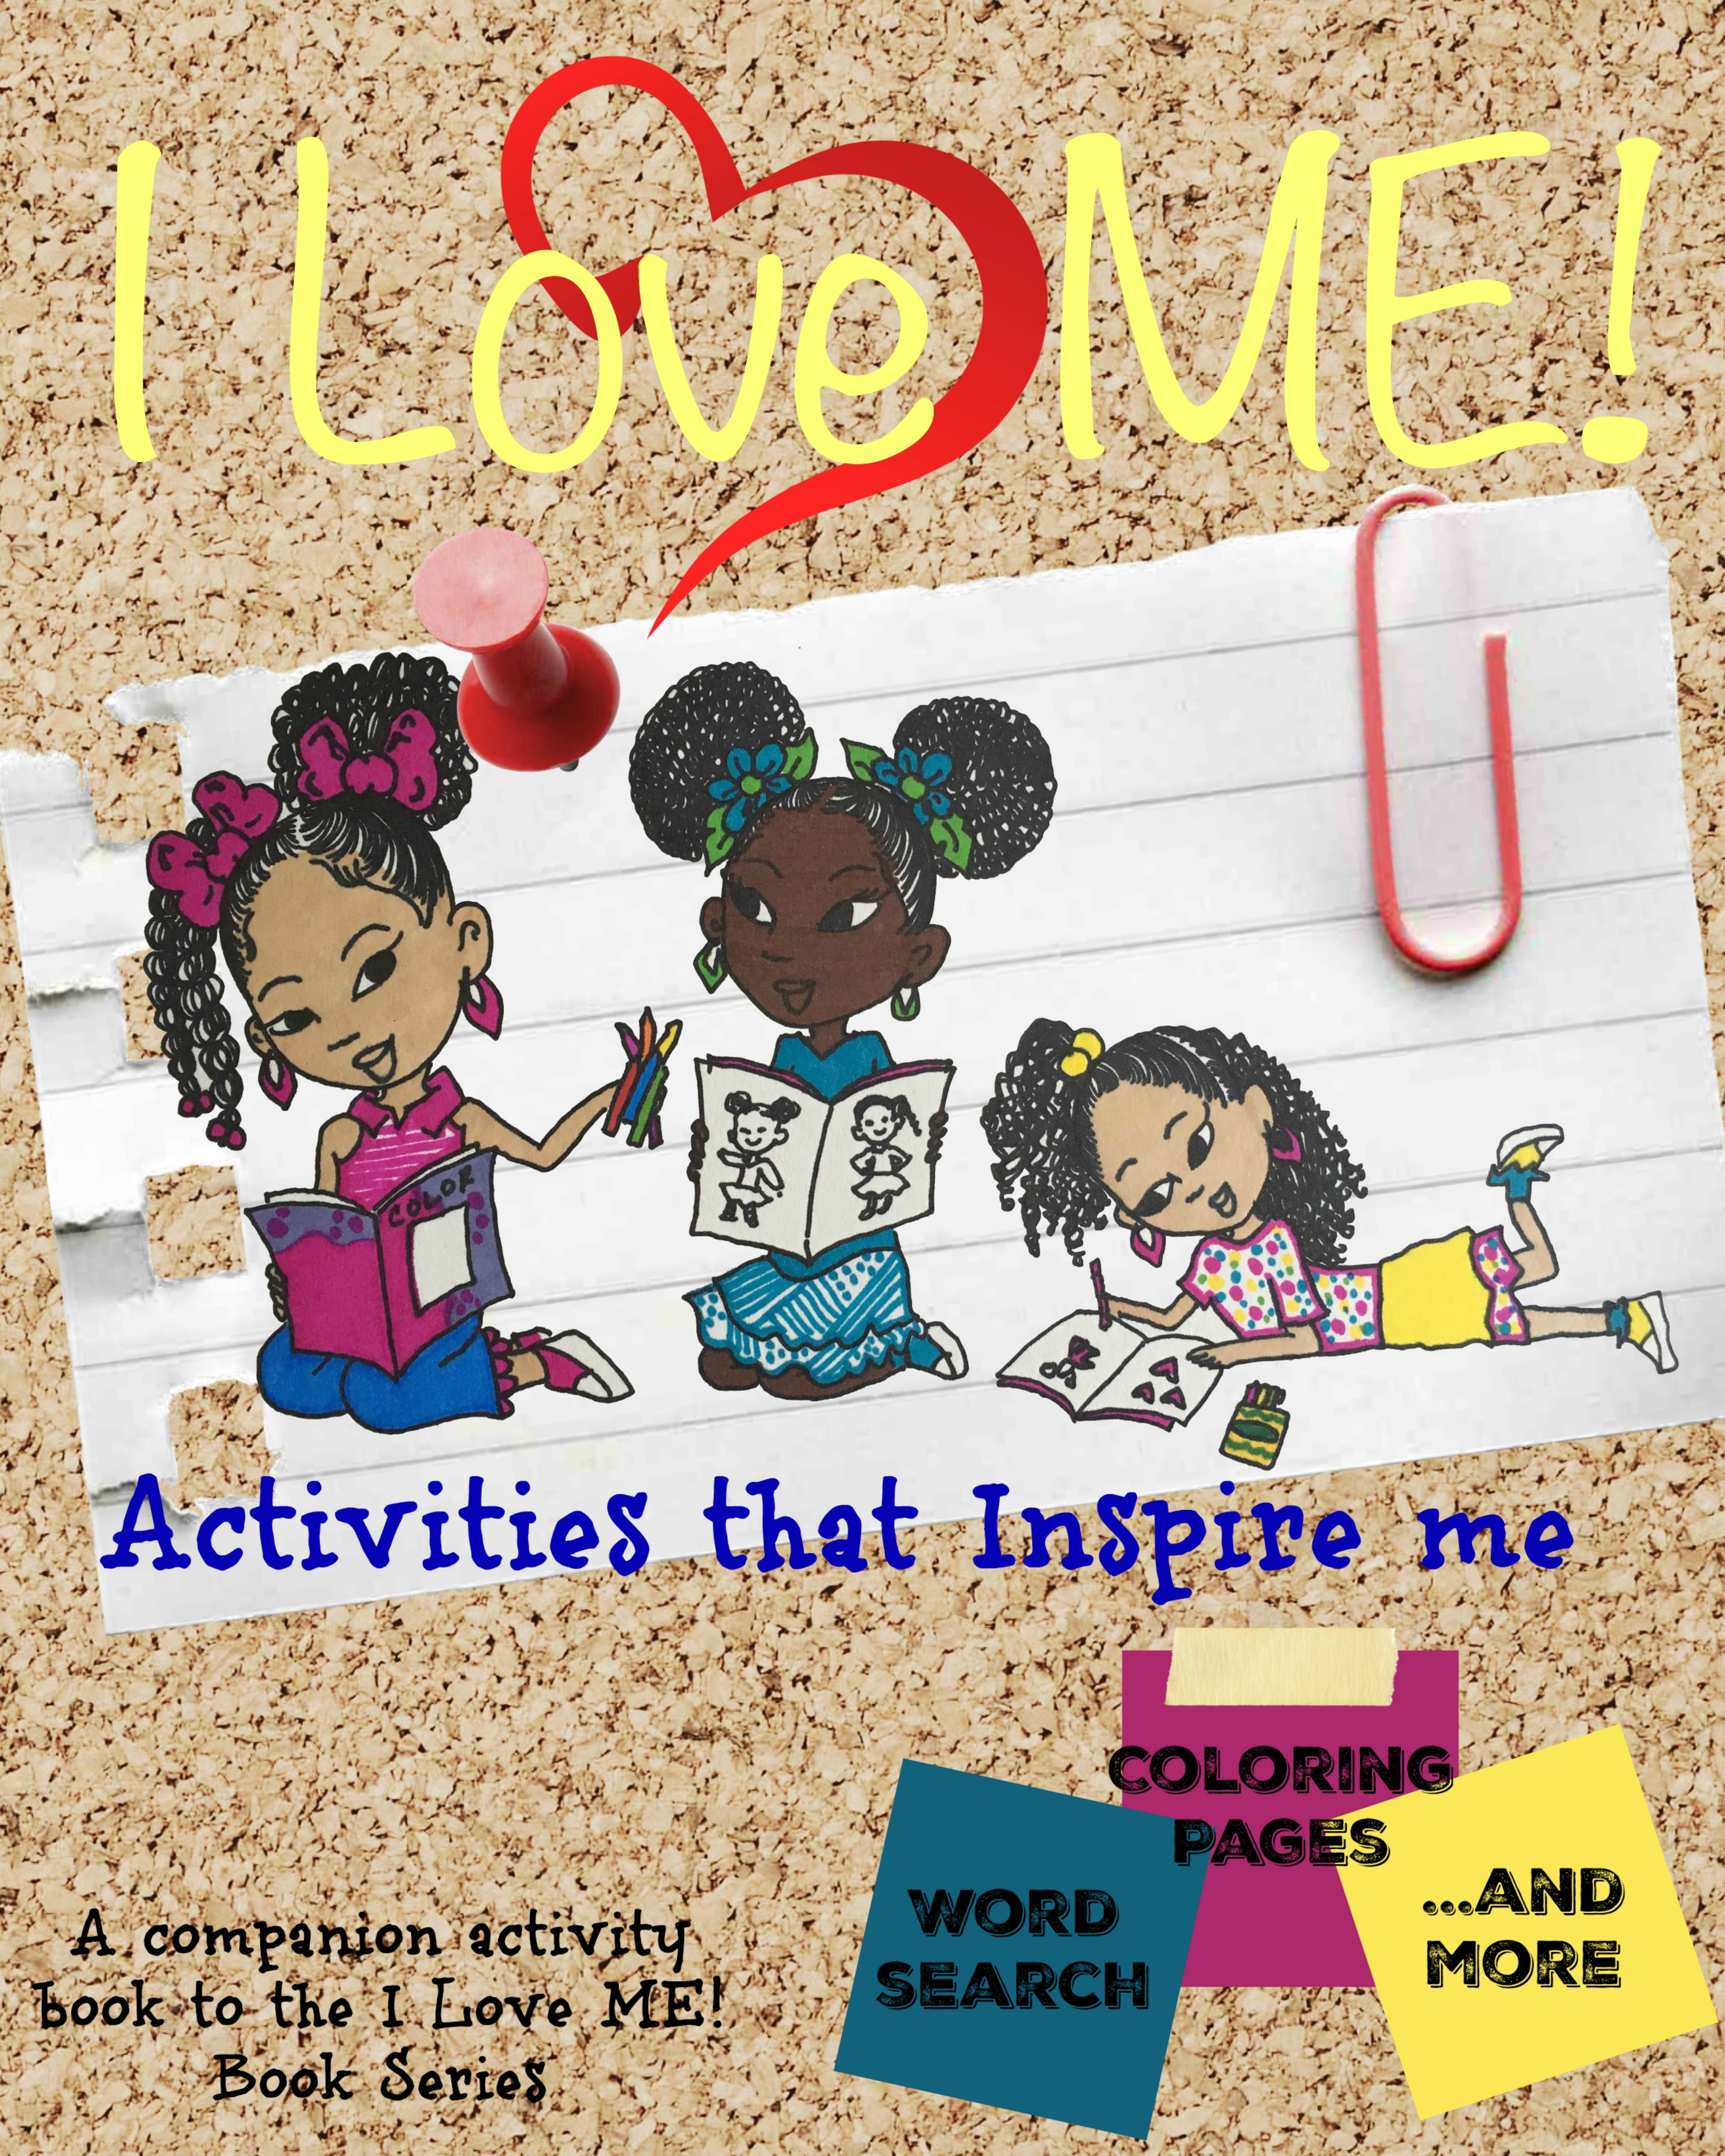 Newest Activity Book!